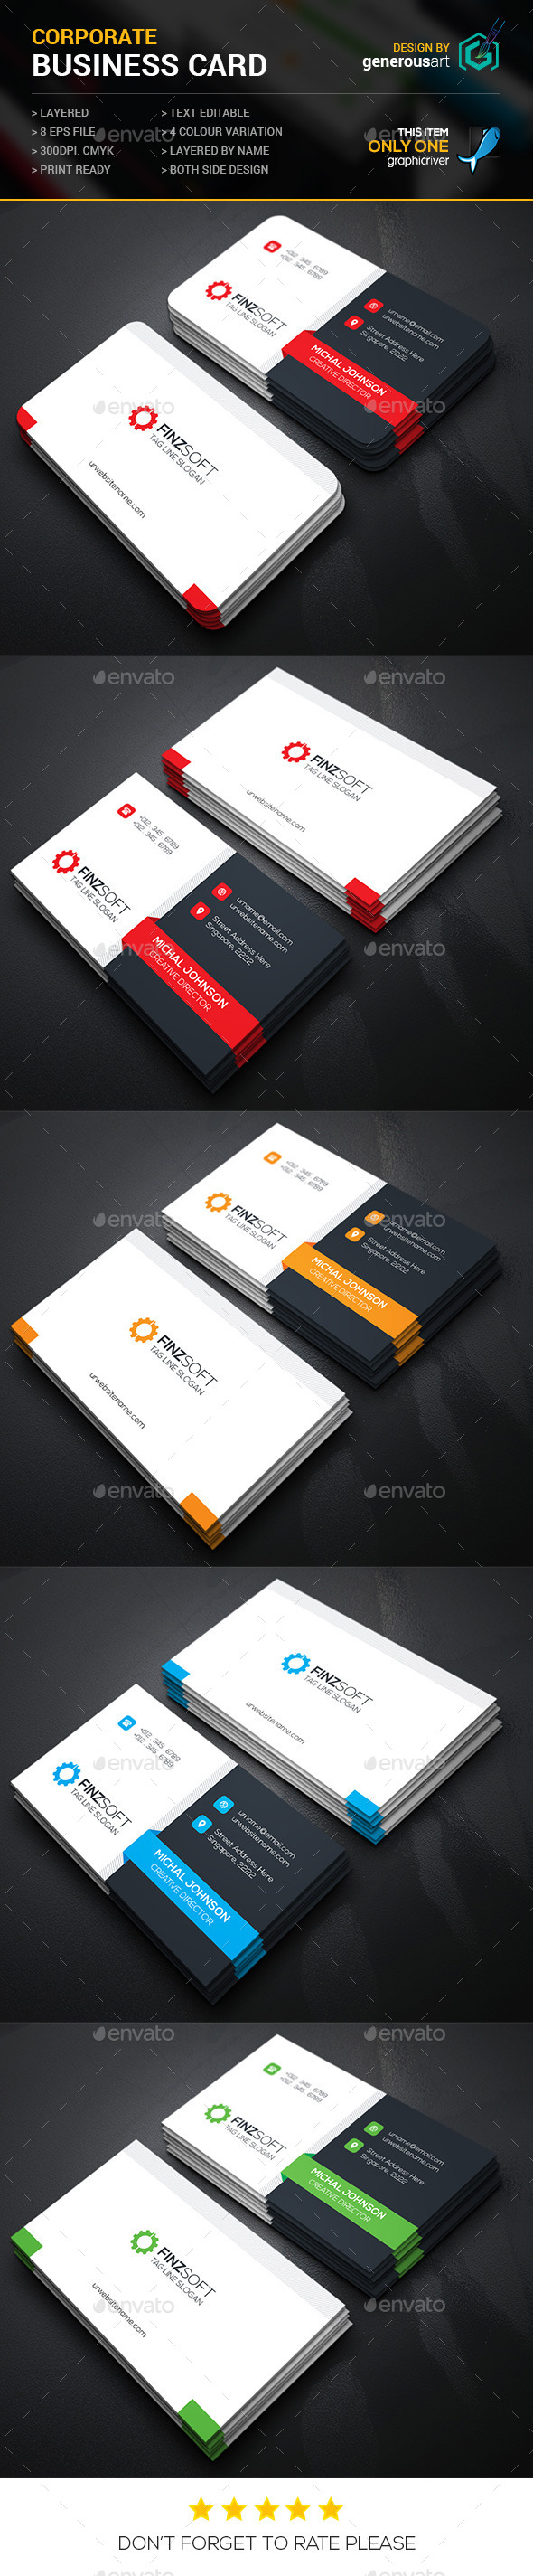 GraphicRiver Finzsoft Business Cards 11894303